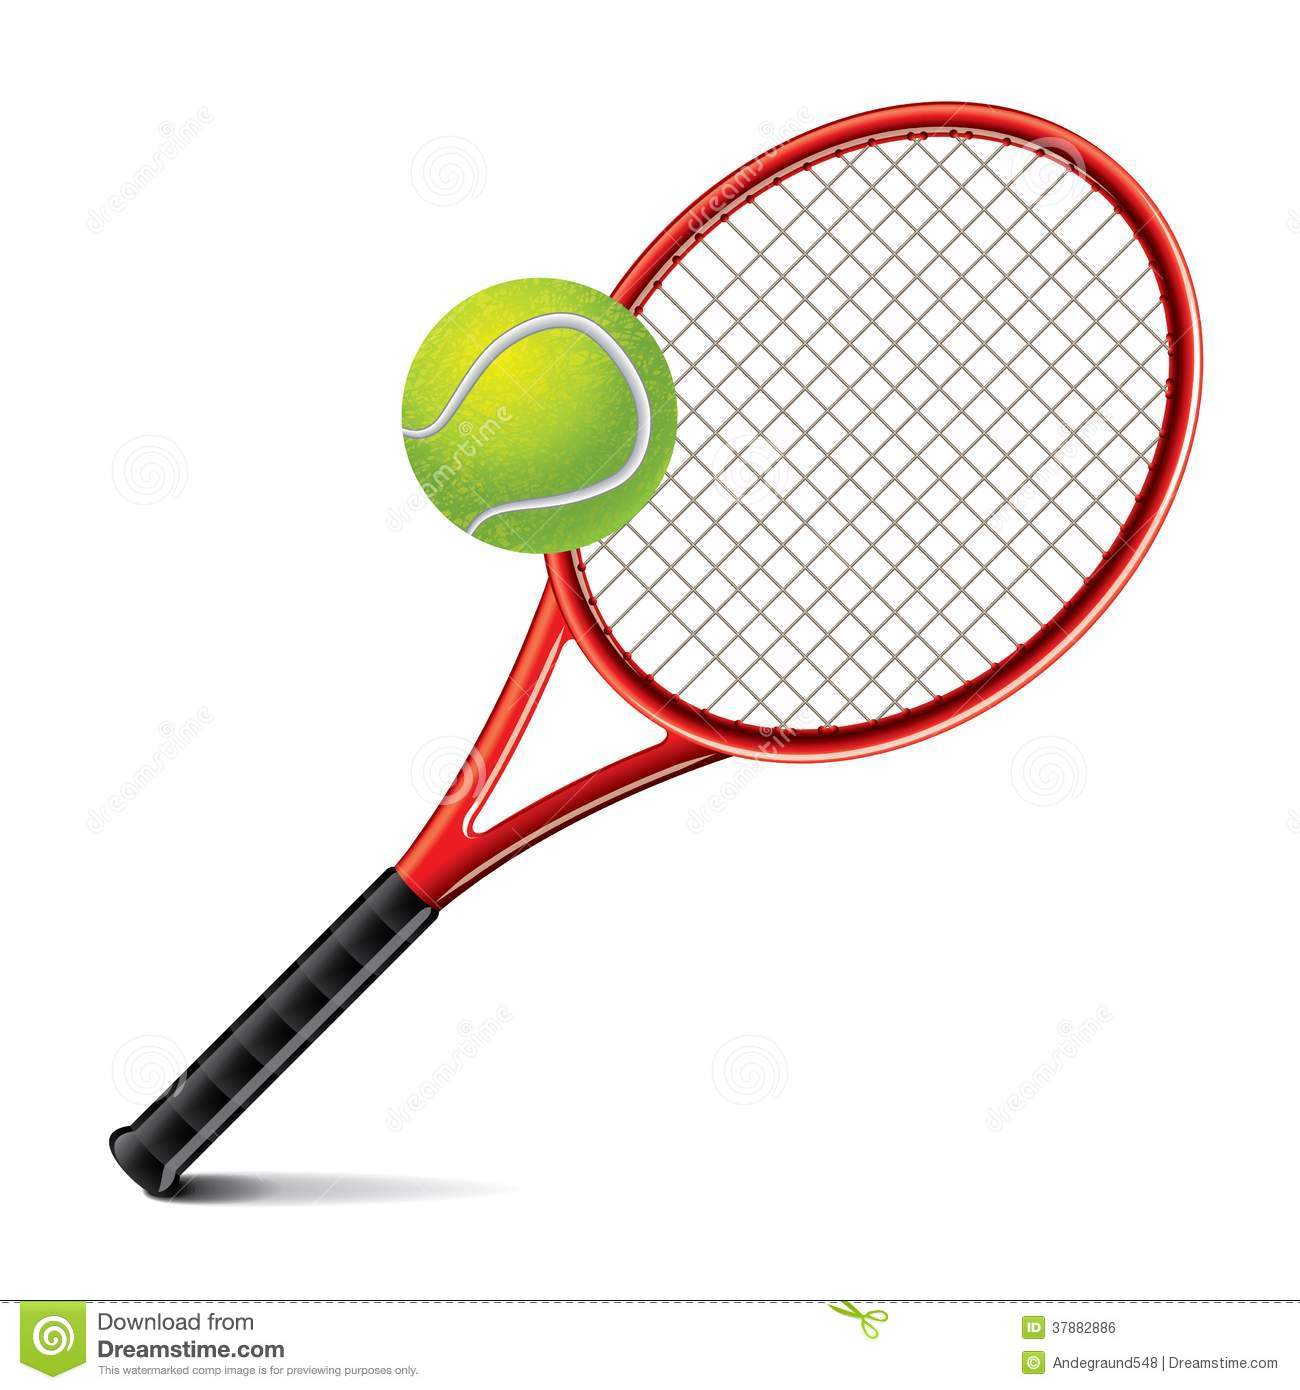 hight resolution of 1300x1390 tennis racket and ball clipart